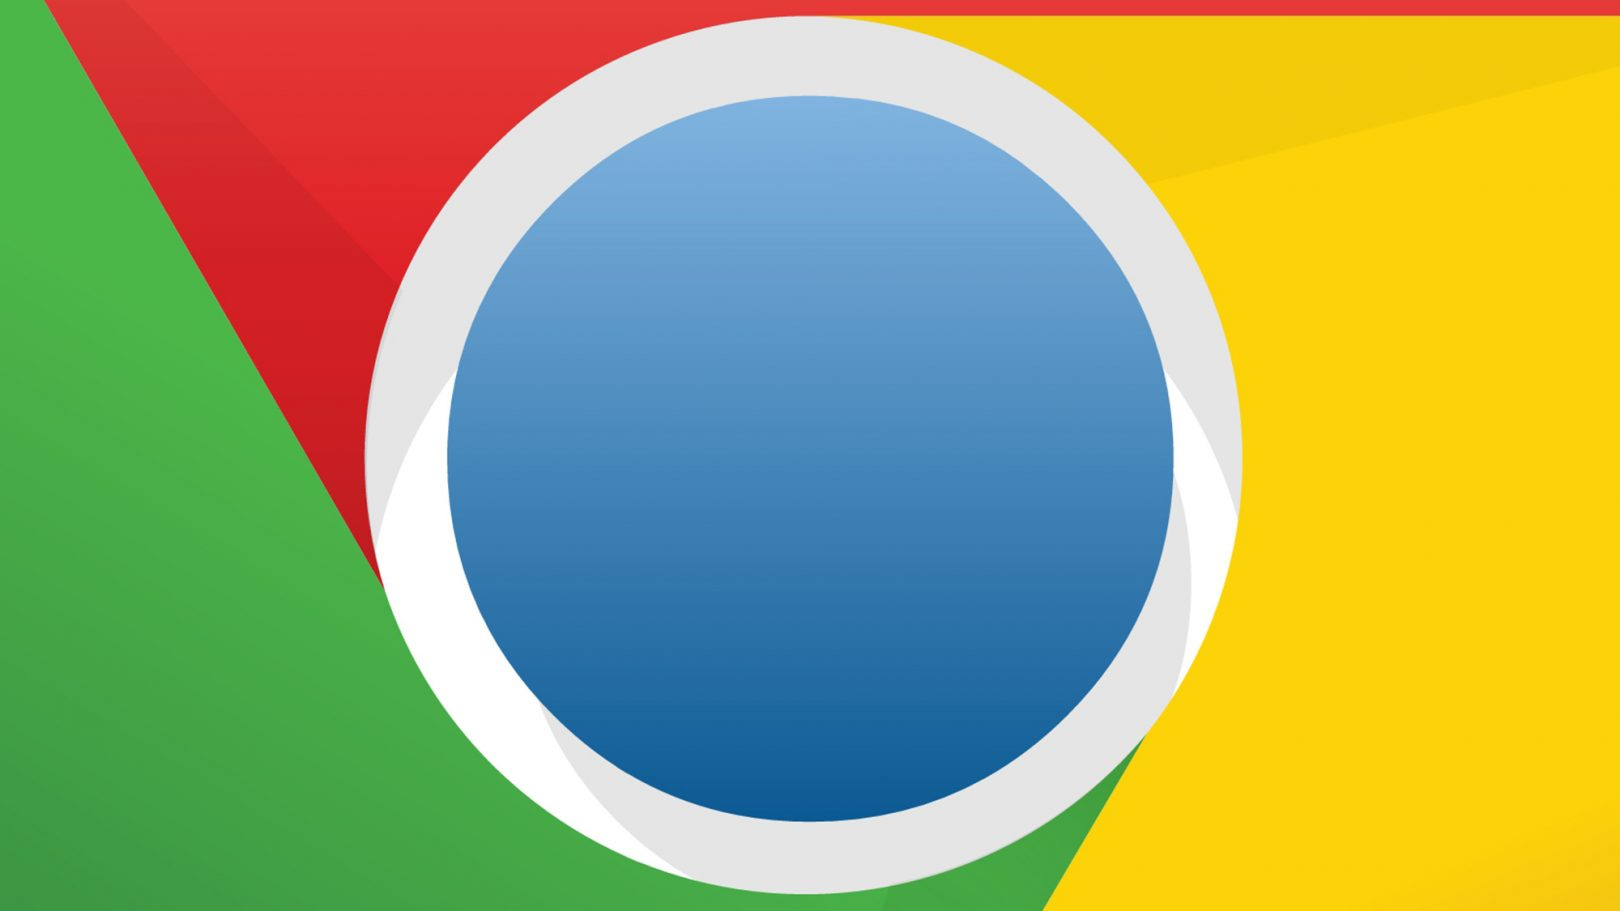 Google Chrome 76: What's new in the latest update? | Top Ten